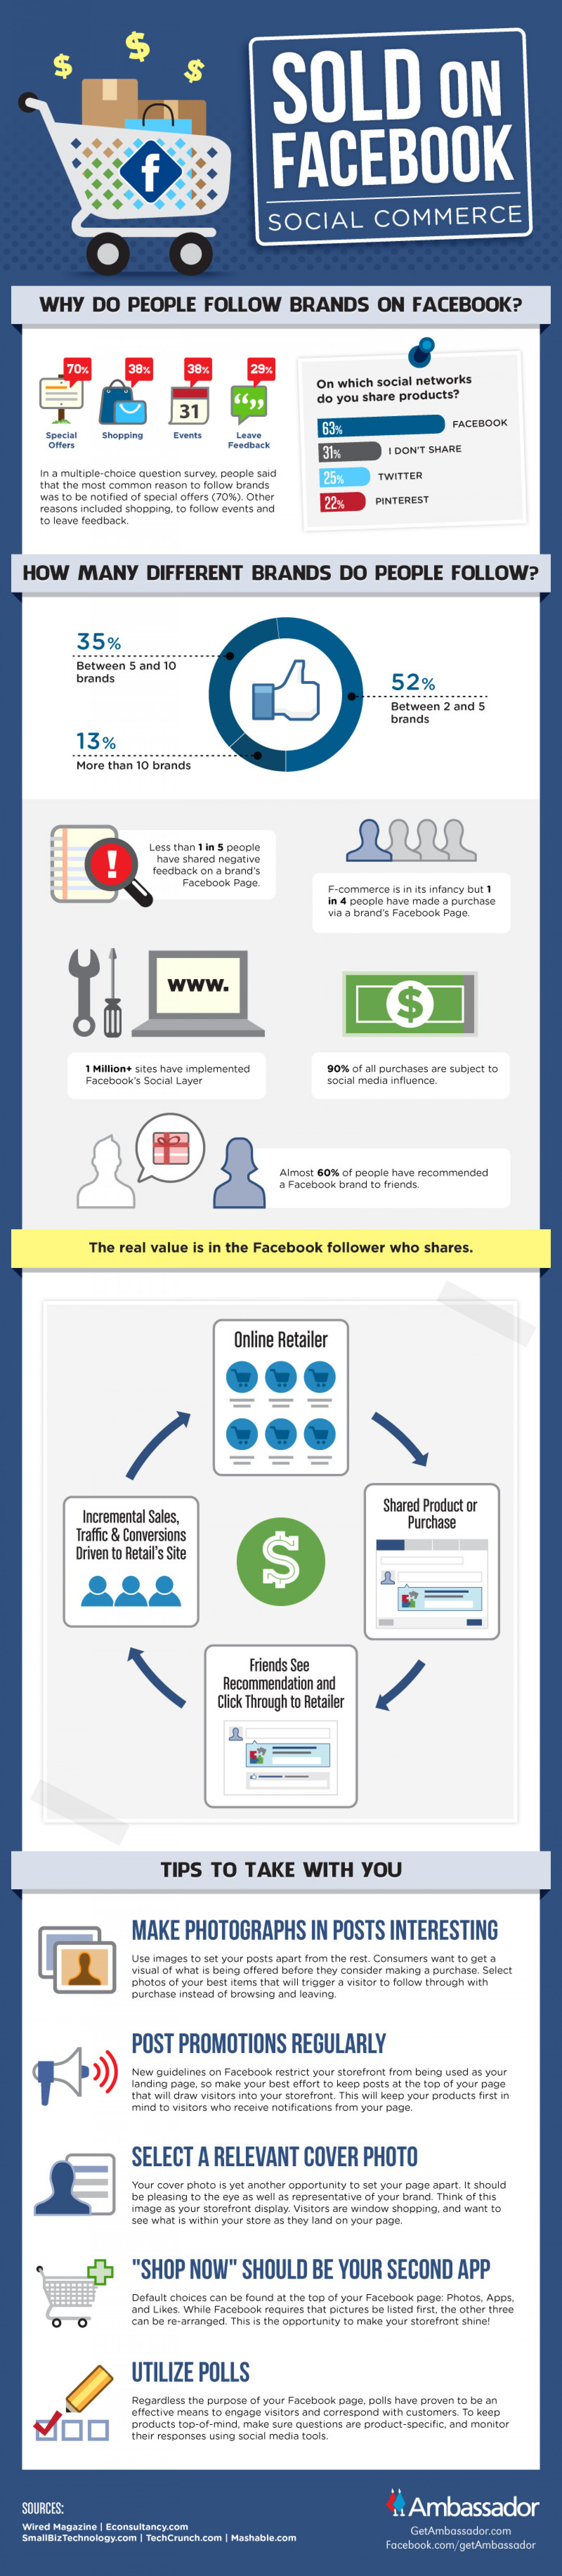 Sold On Facebook - Social Commerce Infographic